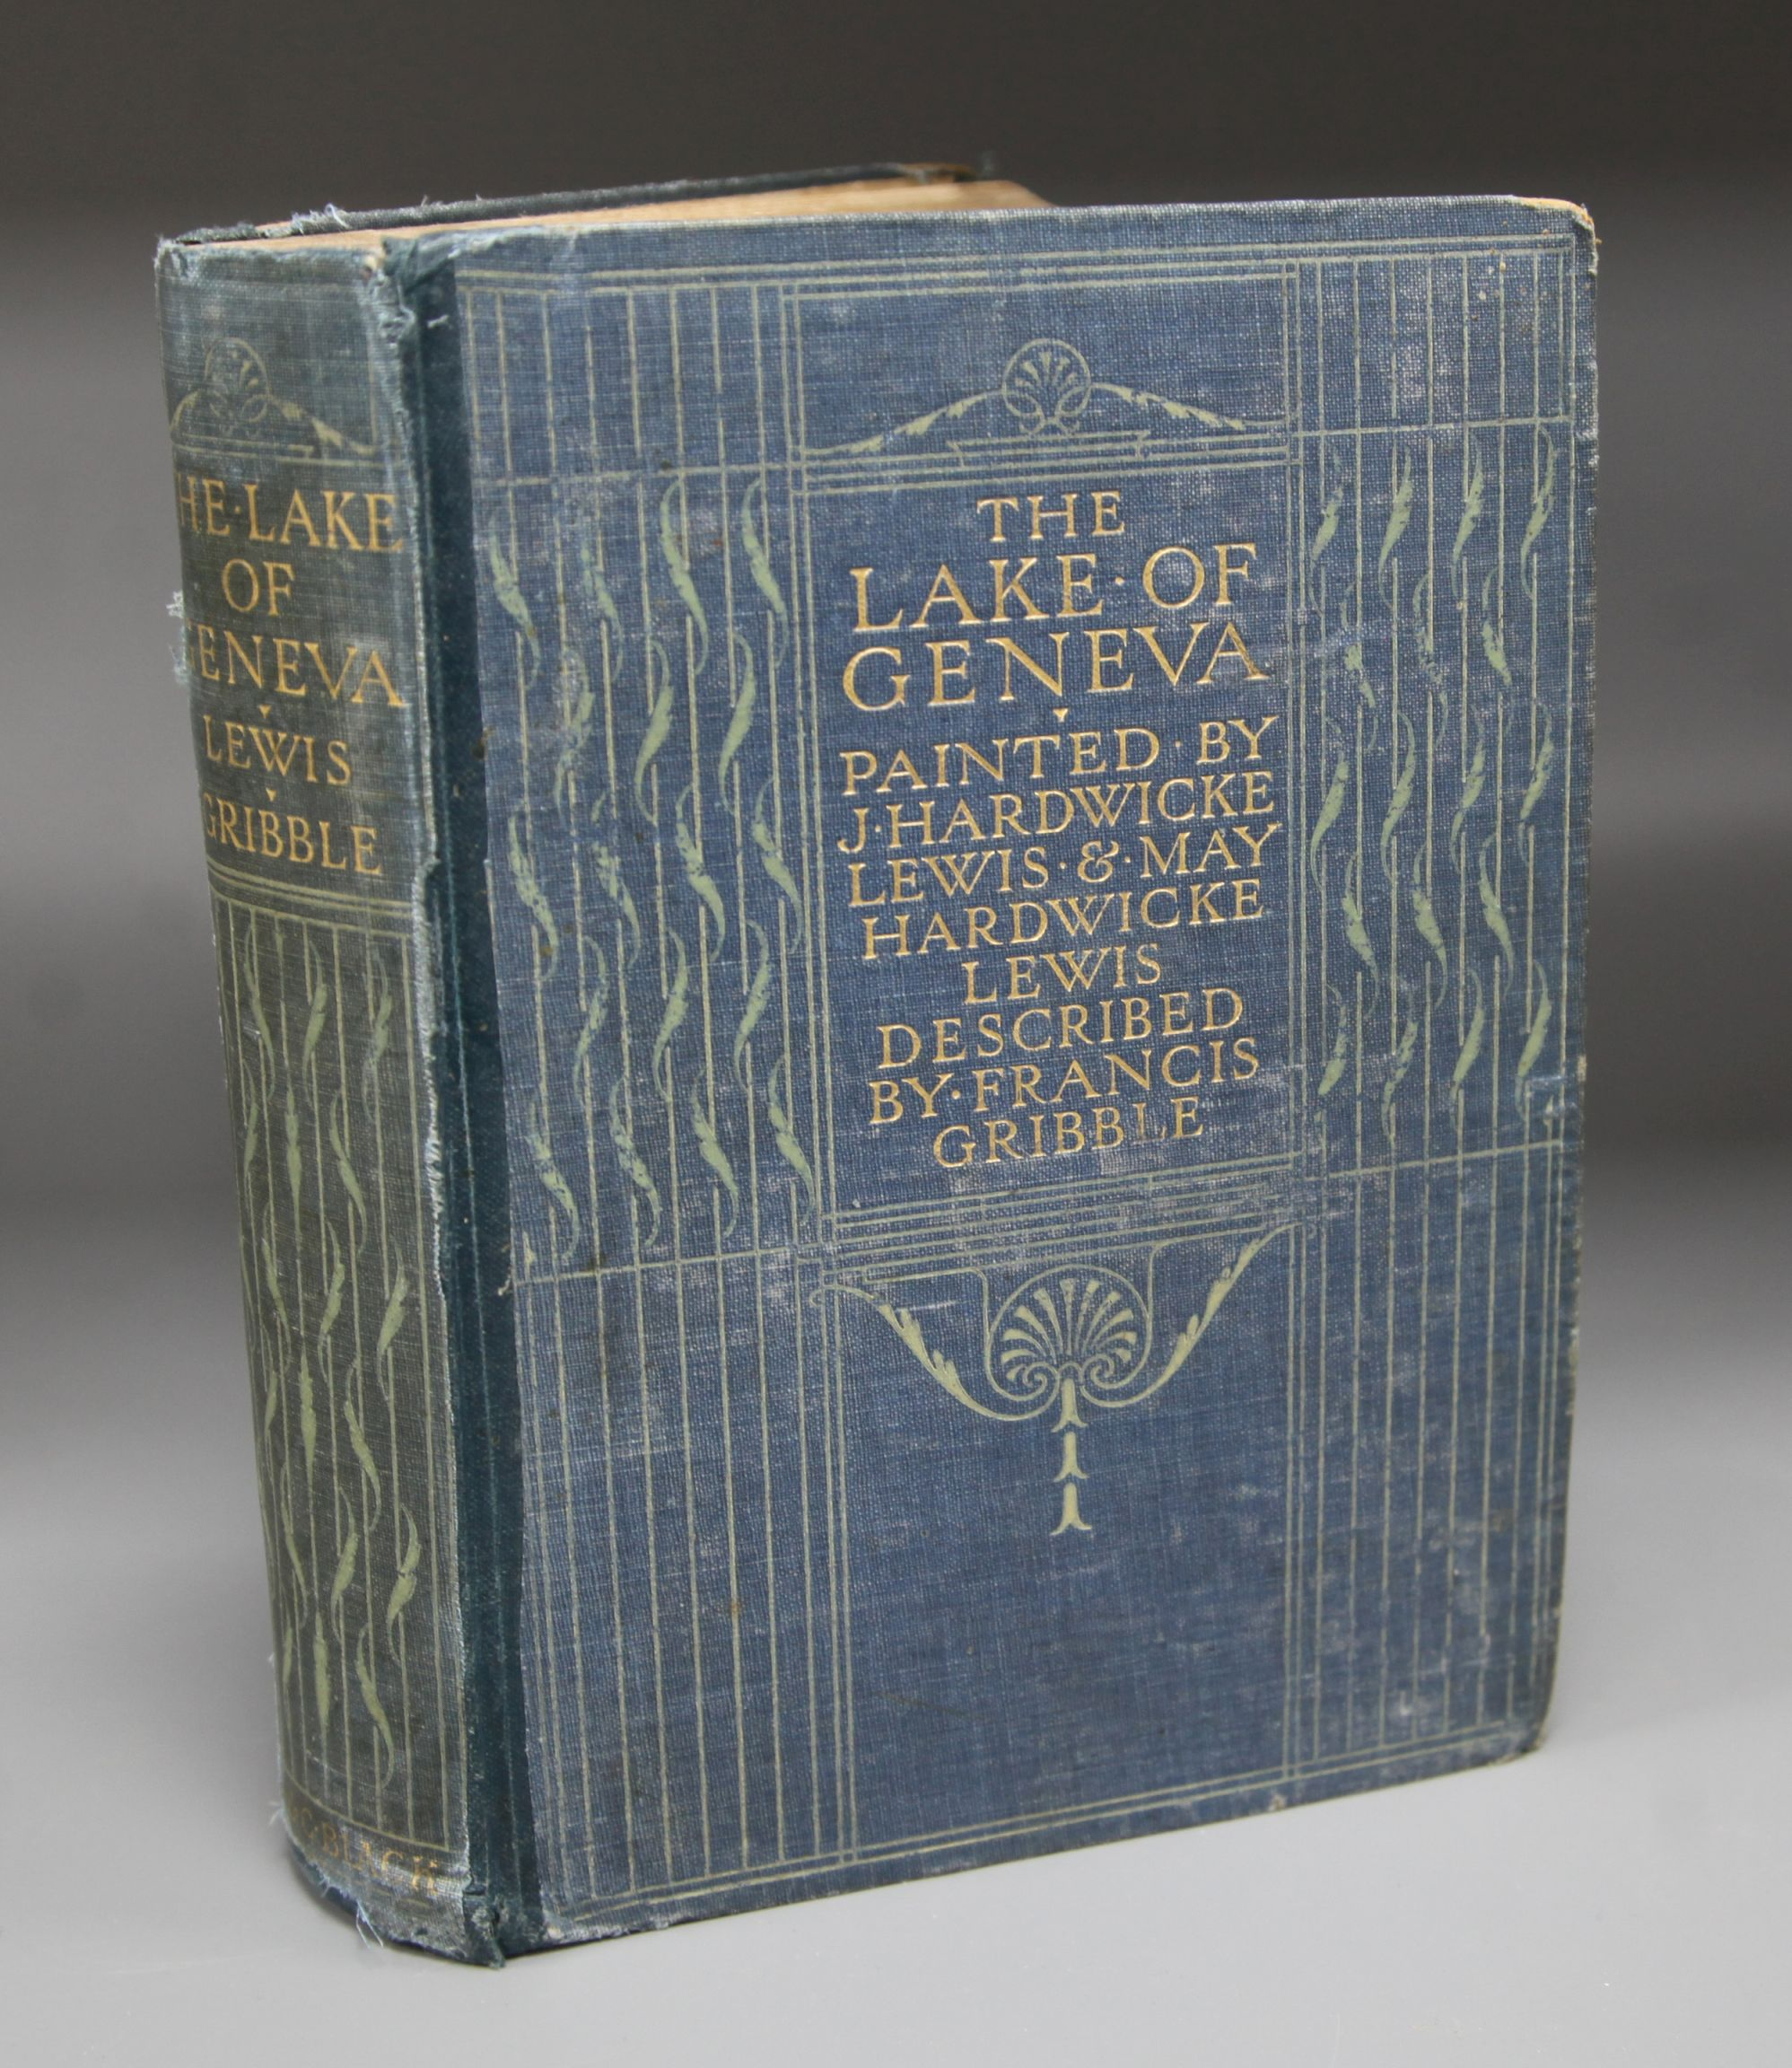 Lot 14 - Gribble, Francis - The Lake of Geneva, illustrated by J. Hardwicke Lewis and Mary Hardwicke,